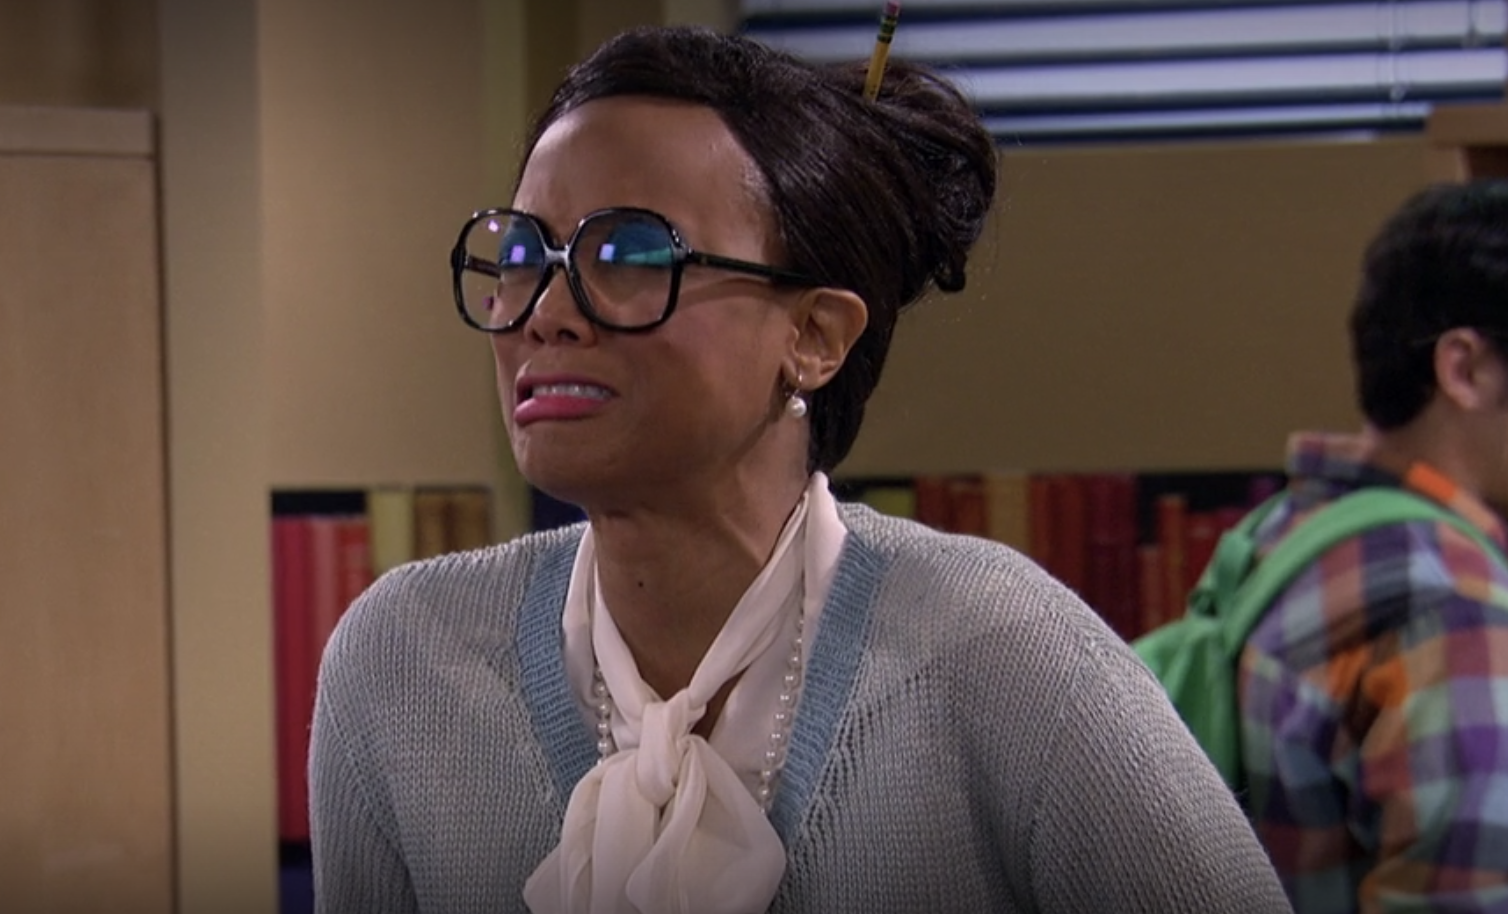 Tyra dressed as a librarian